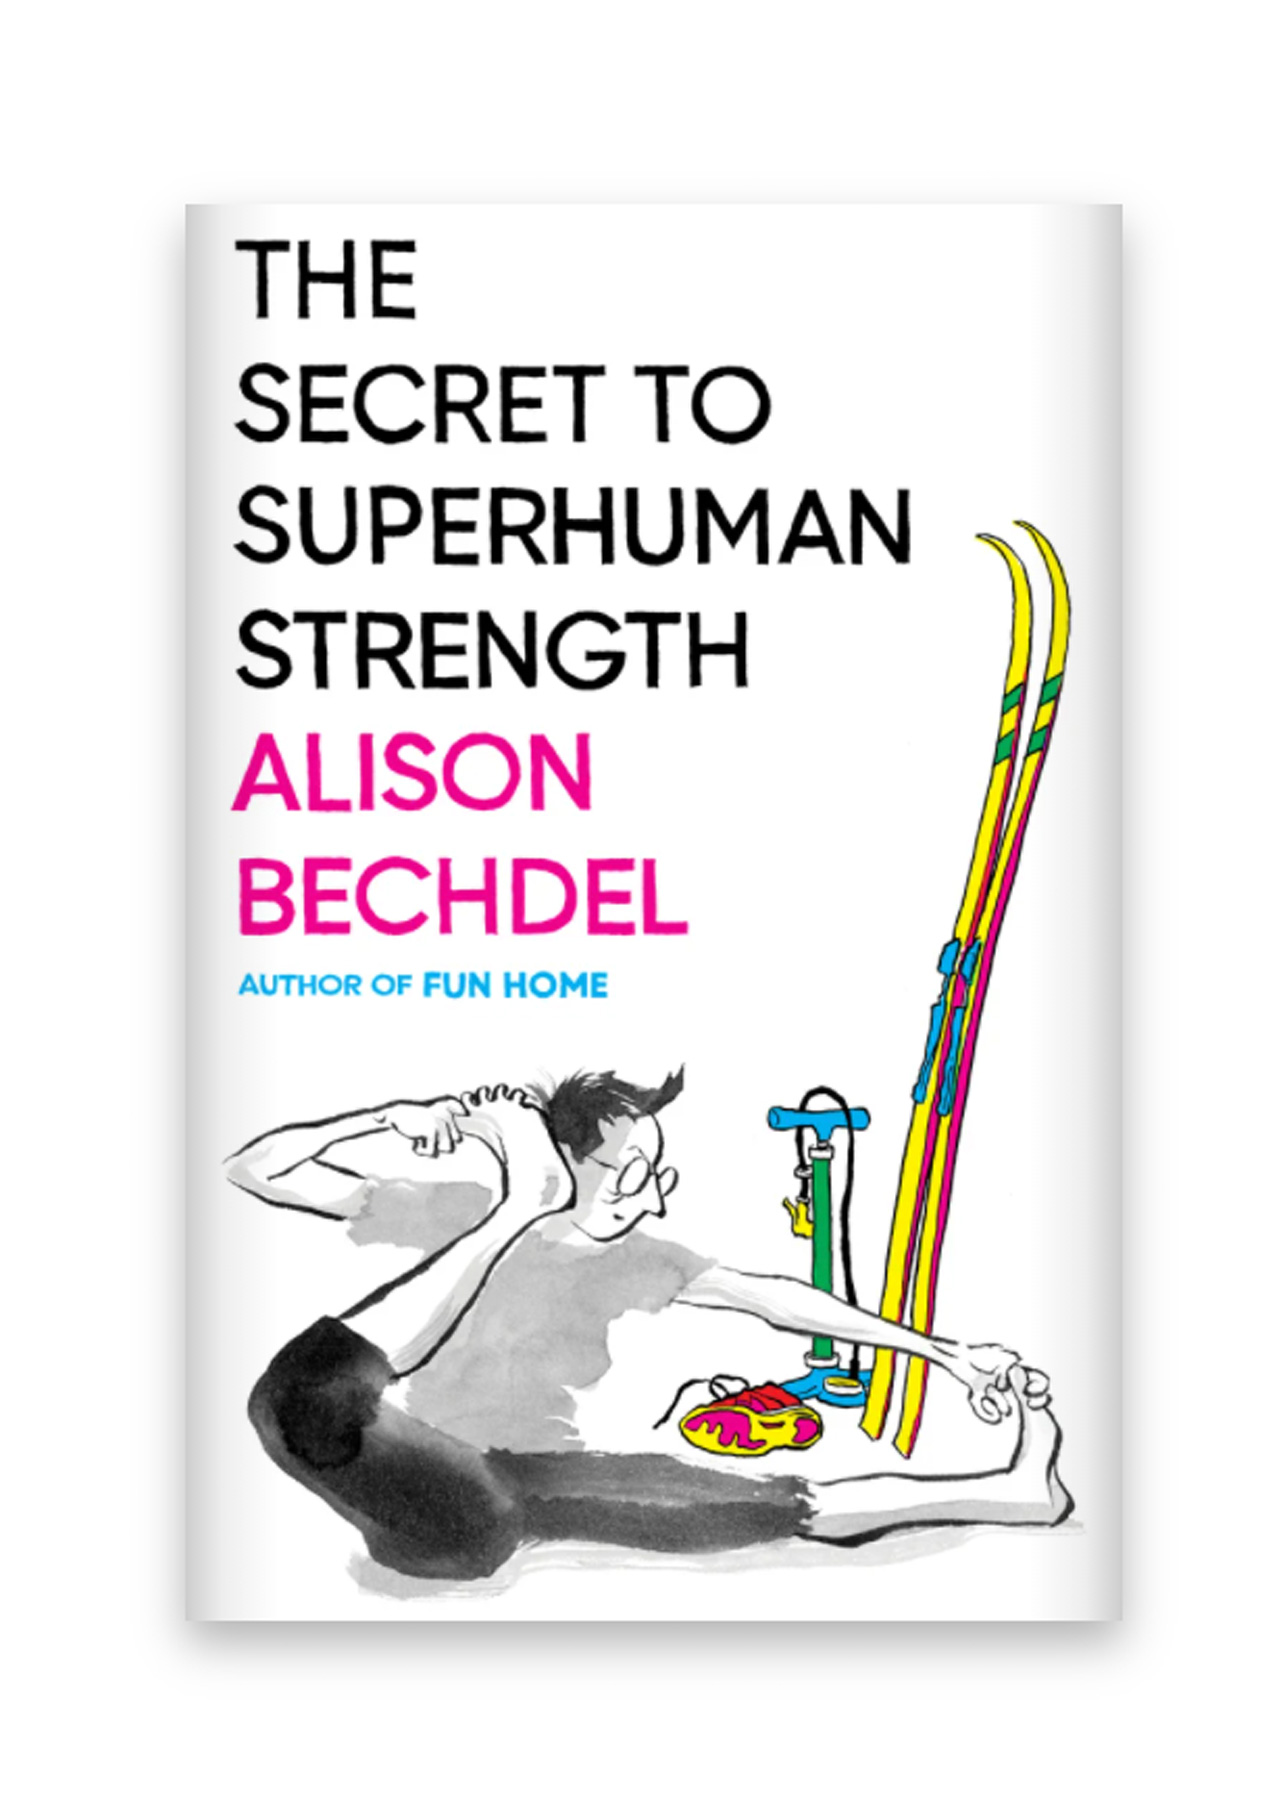 Best New LGBTQIA+ Books 2021: The Secret to Superhuman Strength by Alison Bechdel